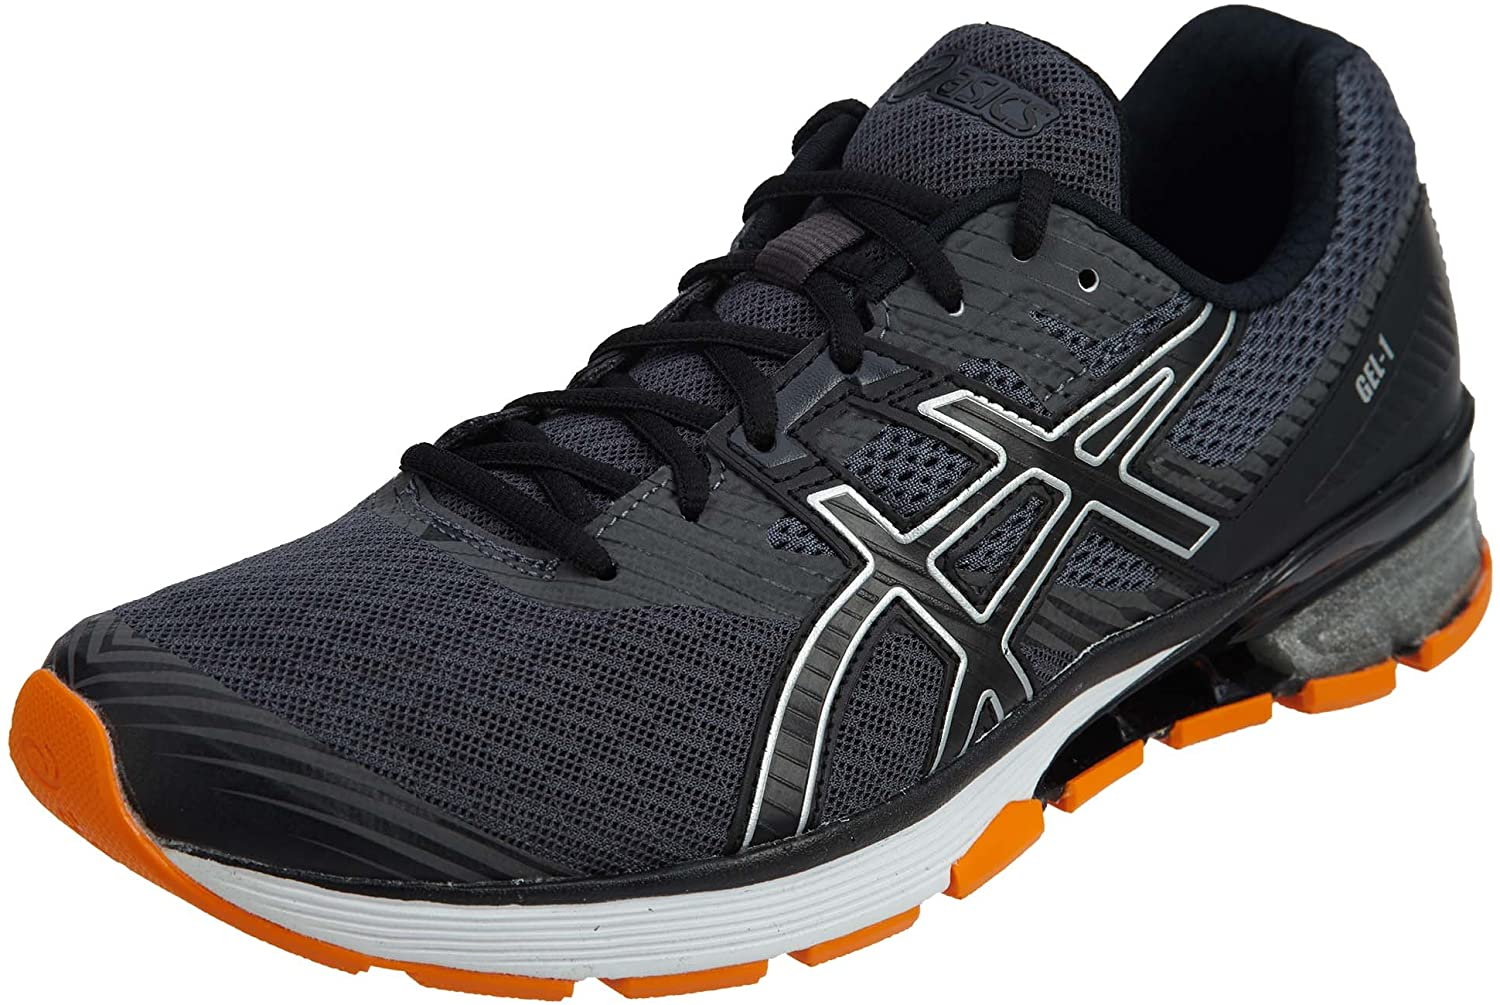 ASICS Mens Gel-1 Trainers Low Top Running Shoes